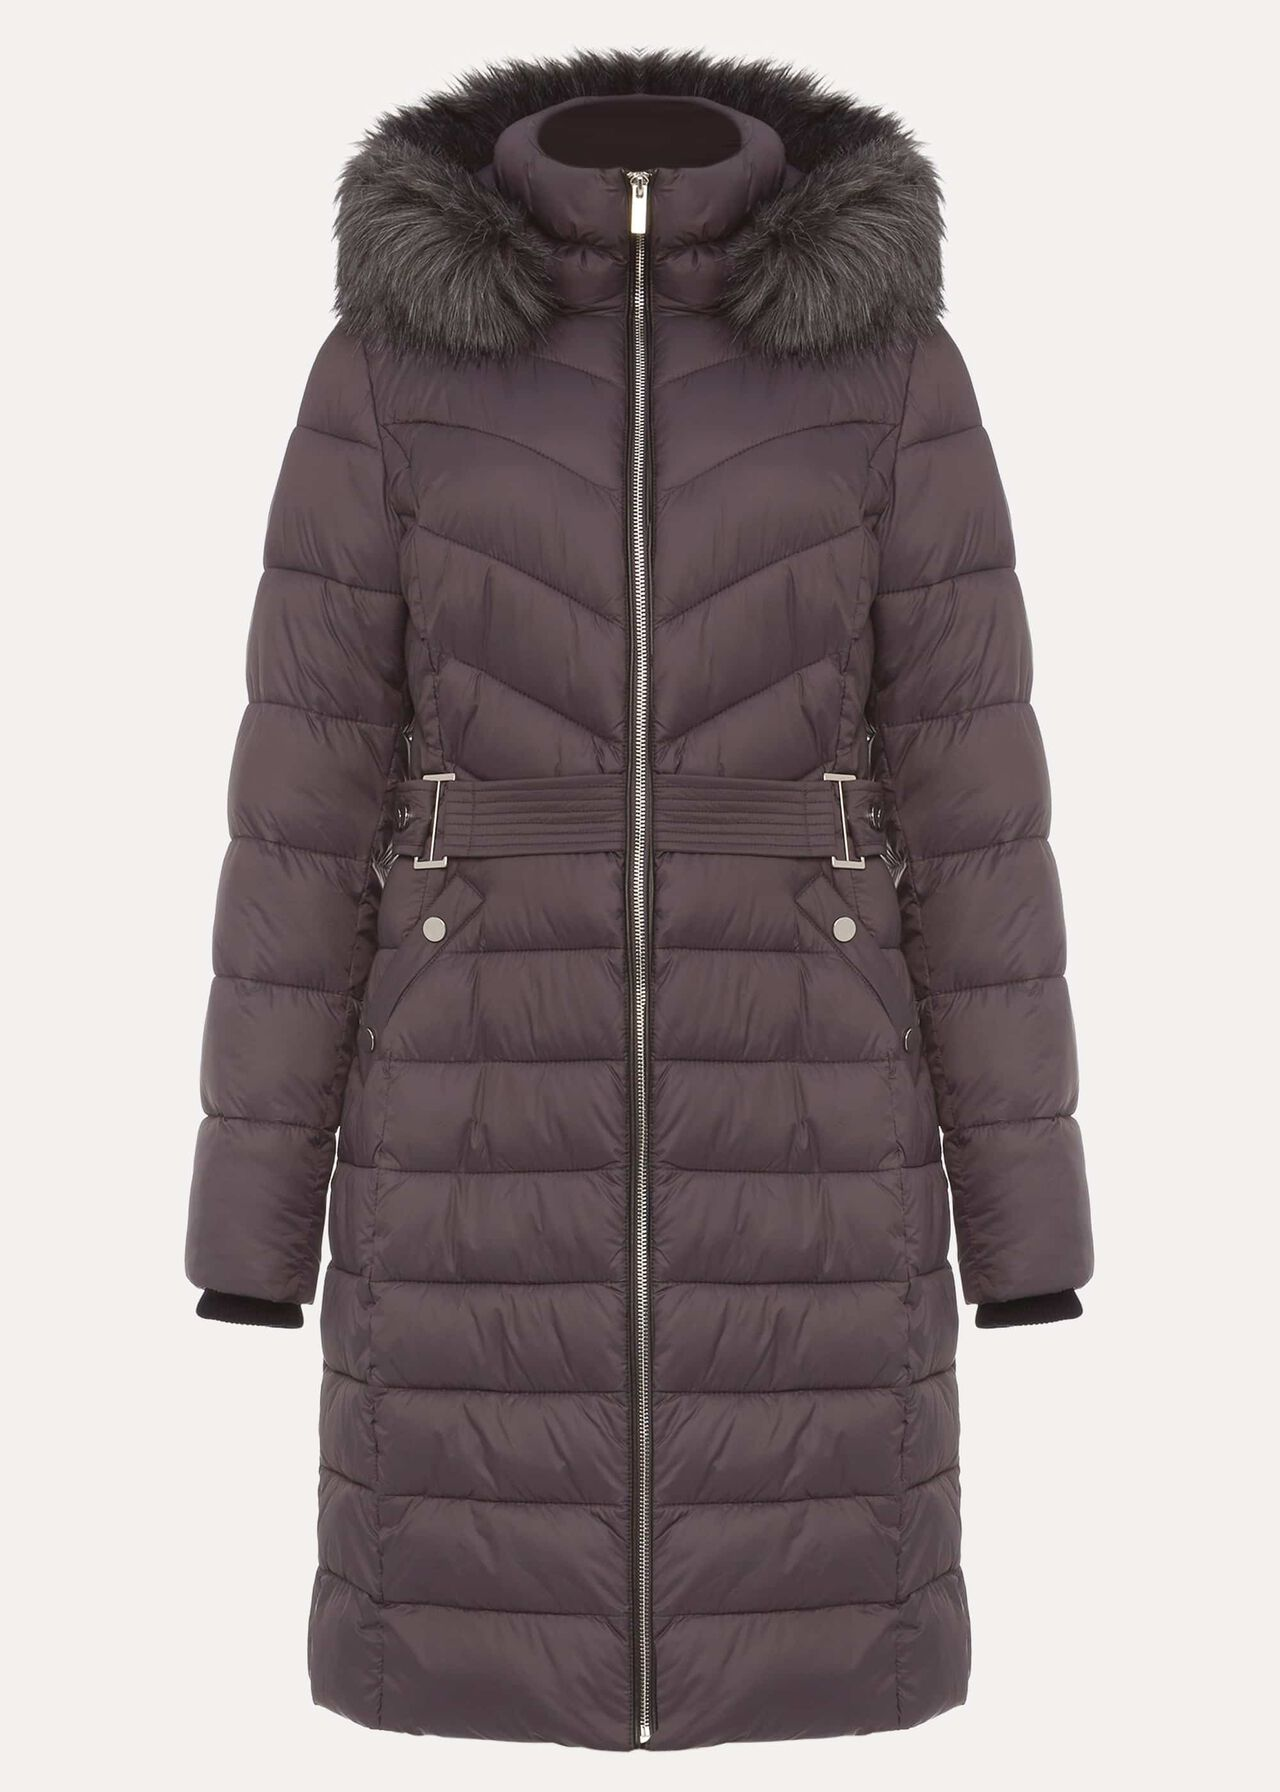 Synthia High Shine Long Puffer